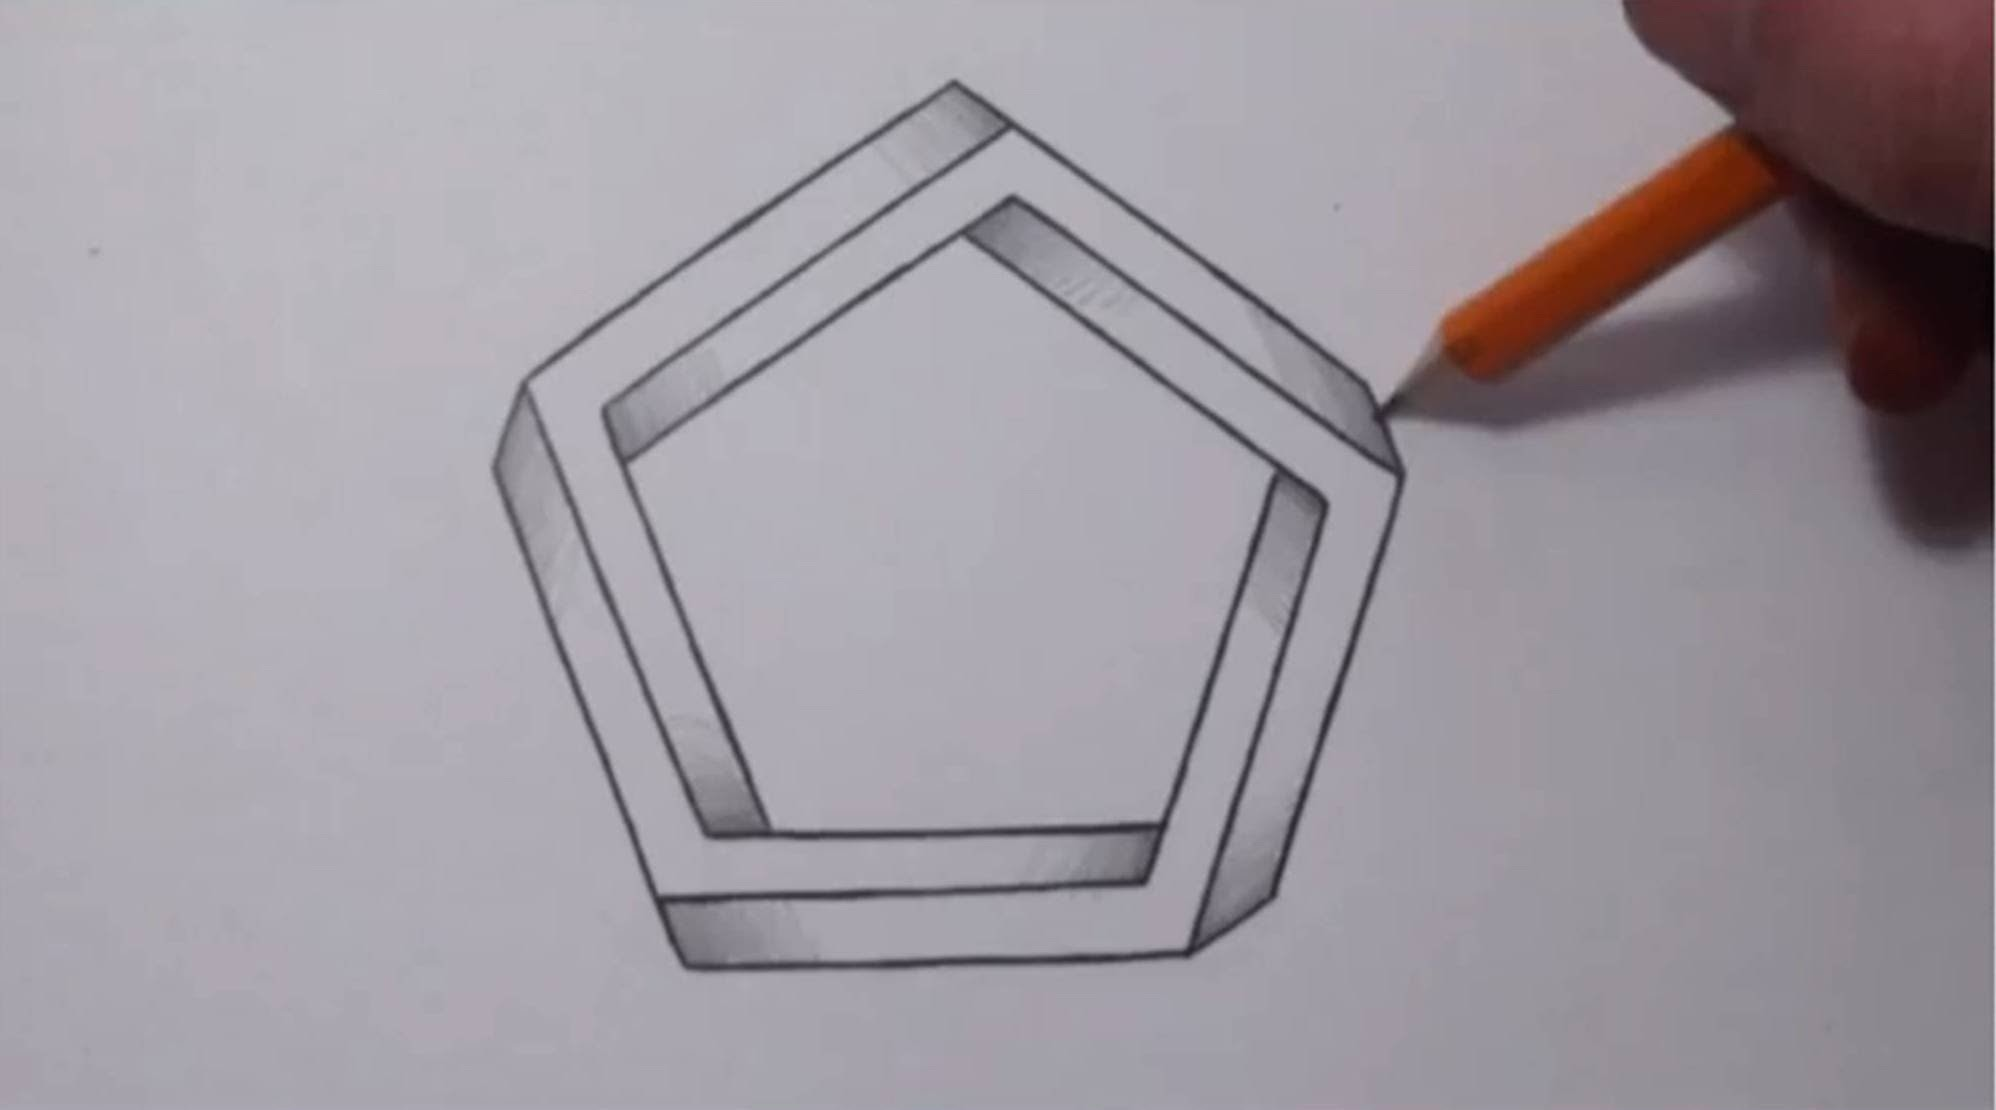 How To Draw an Impossible Pentagon - Cool Optical Illusion